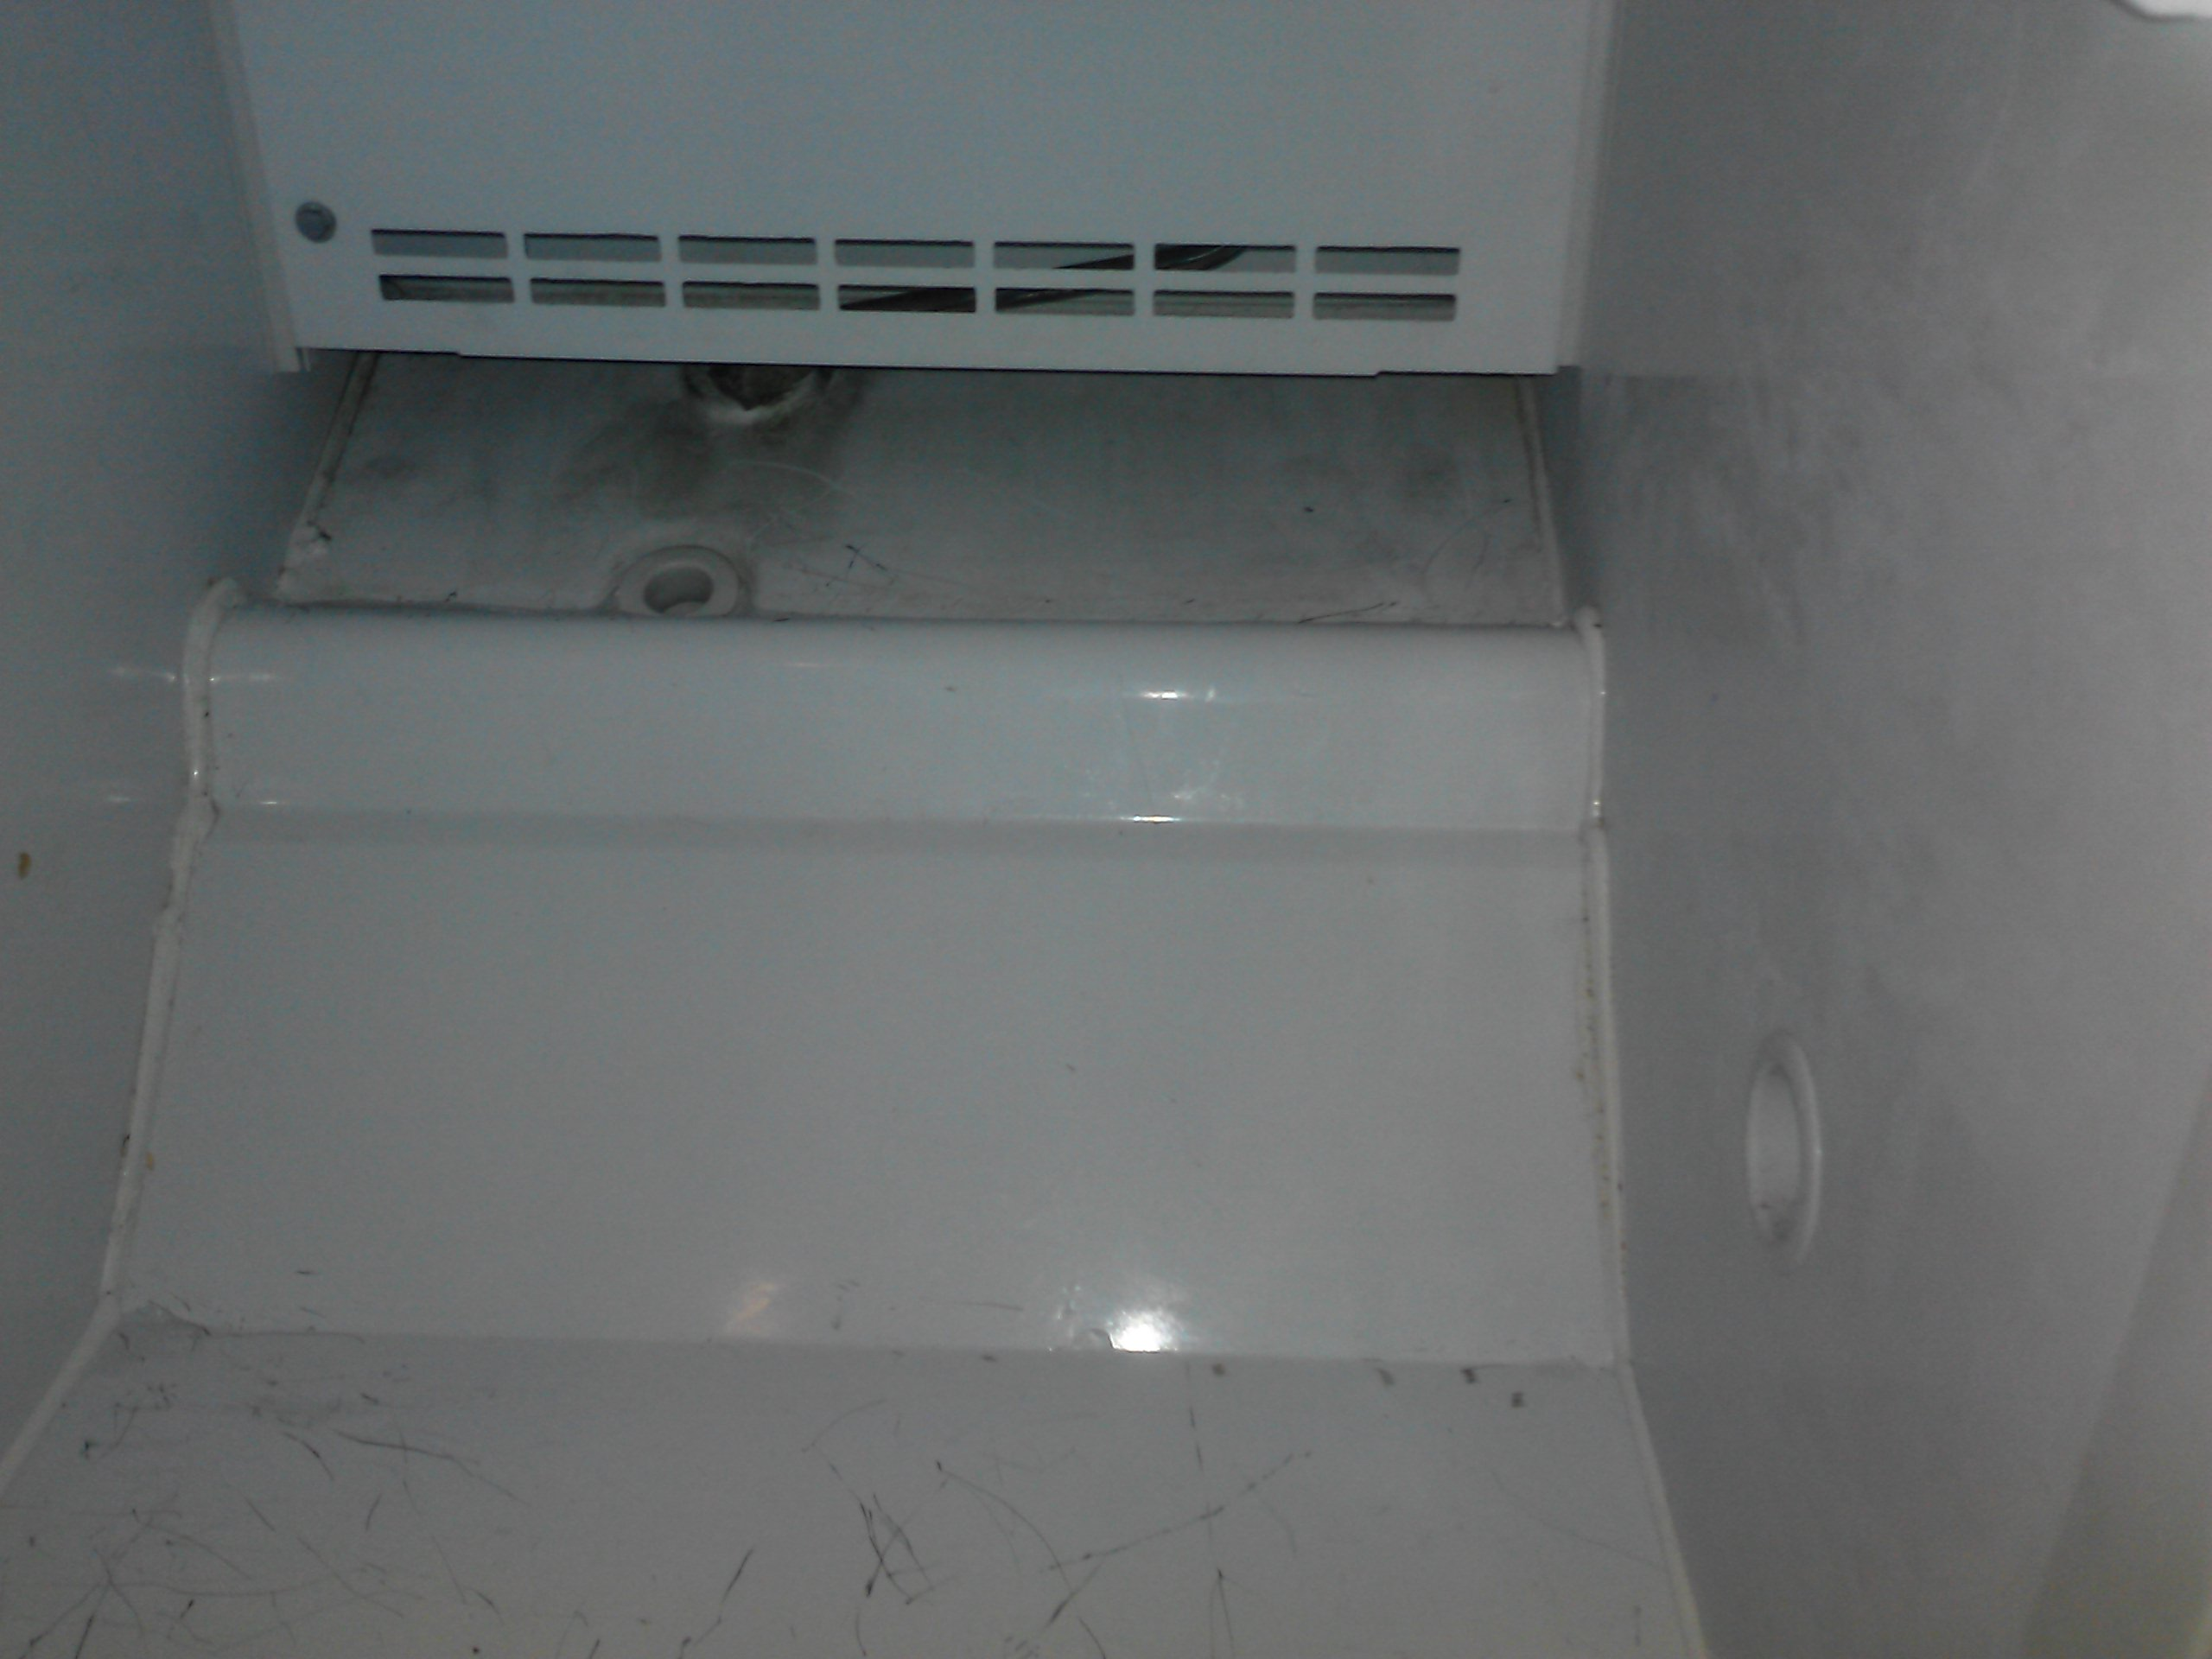 I Have A Ge Tpx21brxa Side By Side Refrigerator It Has